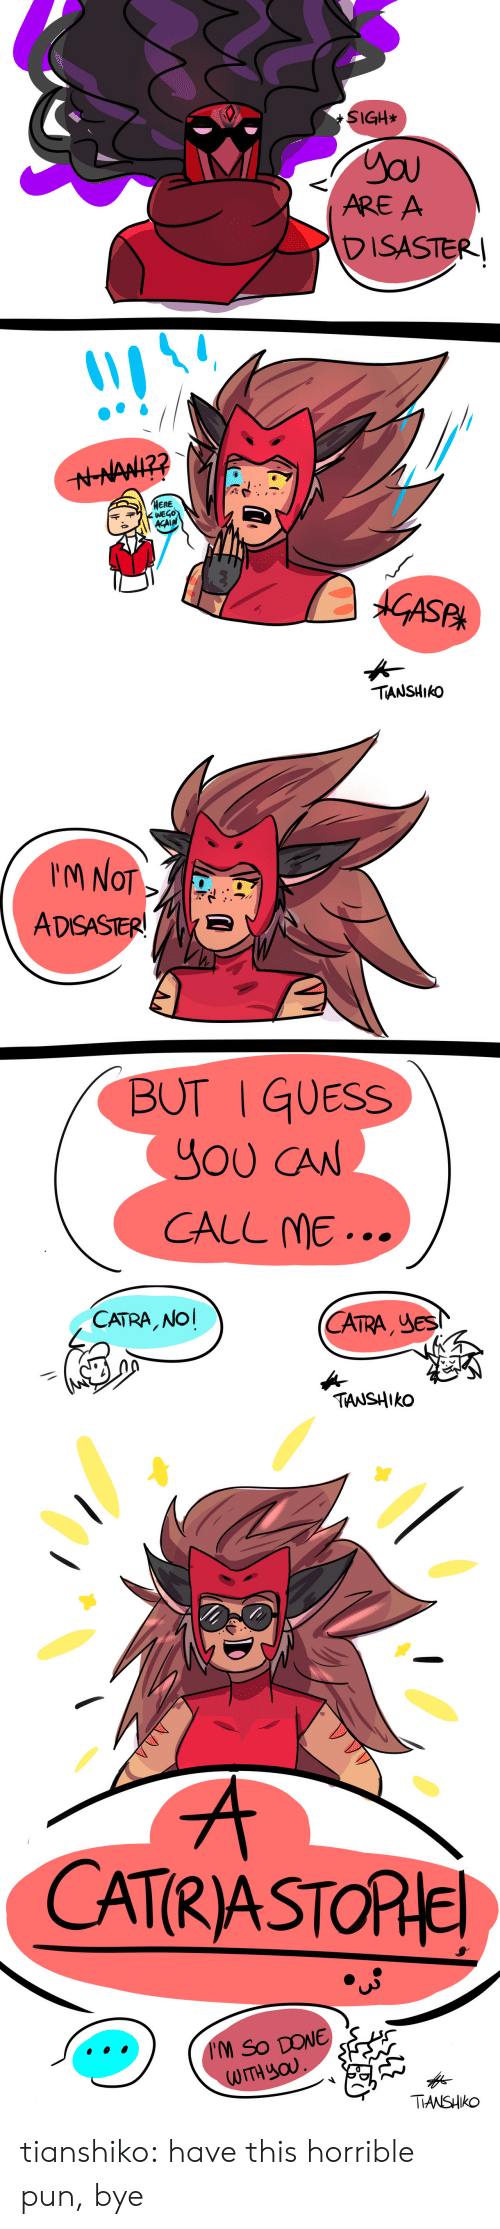 Tumblr, Blog, and Guess: SIGH*  ARE A  DISASTER  ERE  千ヂ WEGO  ACAIN  ek  TIANSHIkO   M NOT  ADSASTERE  BUT I GUESS  YOU CAN  CALL ME...  CATRA, NO  CA , JeS  TRA  TANSHIko   CATRASTORle  TIANSHIko tianshiko:  have this horrible pun, bye